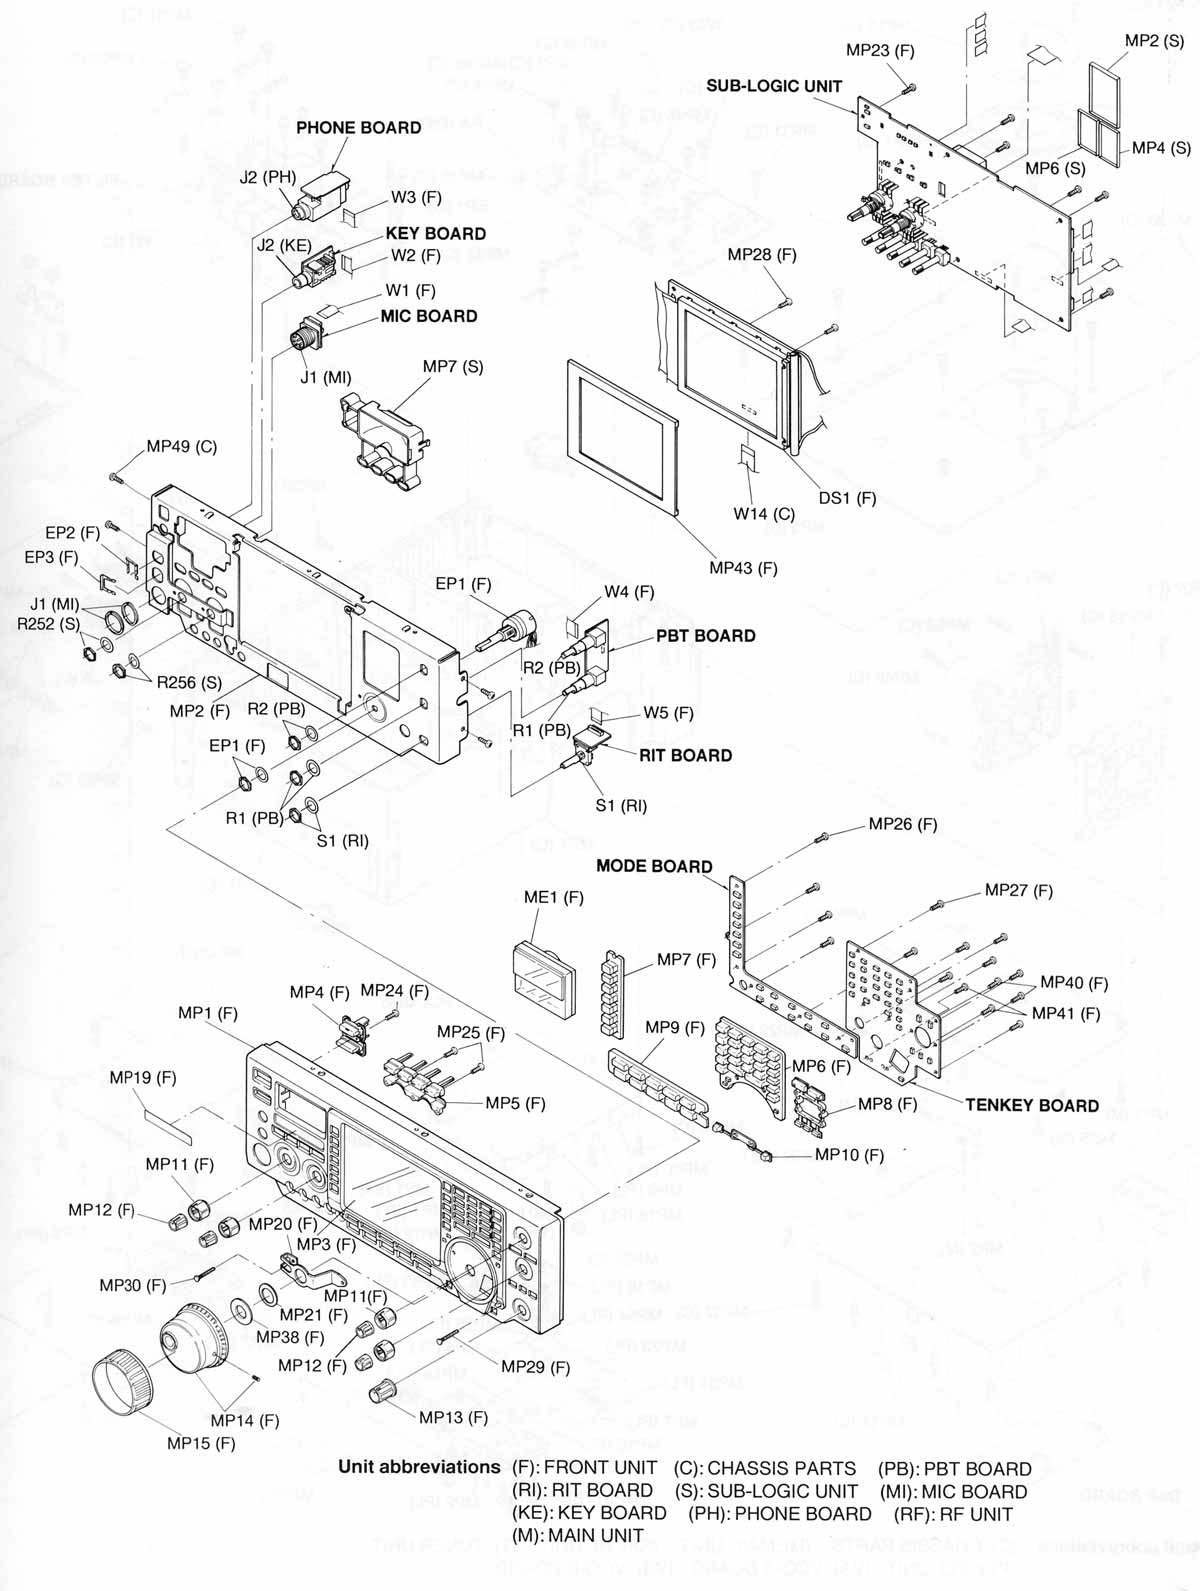 IC-756 Front Panel Exploded View